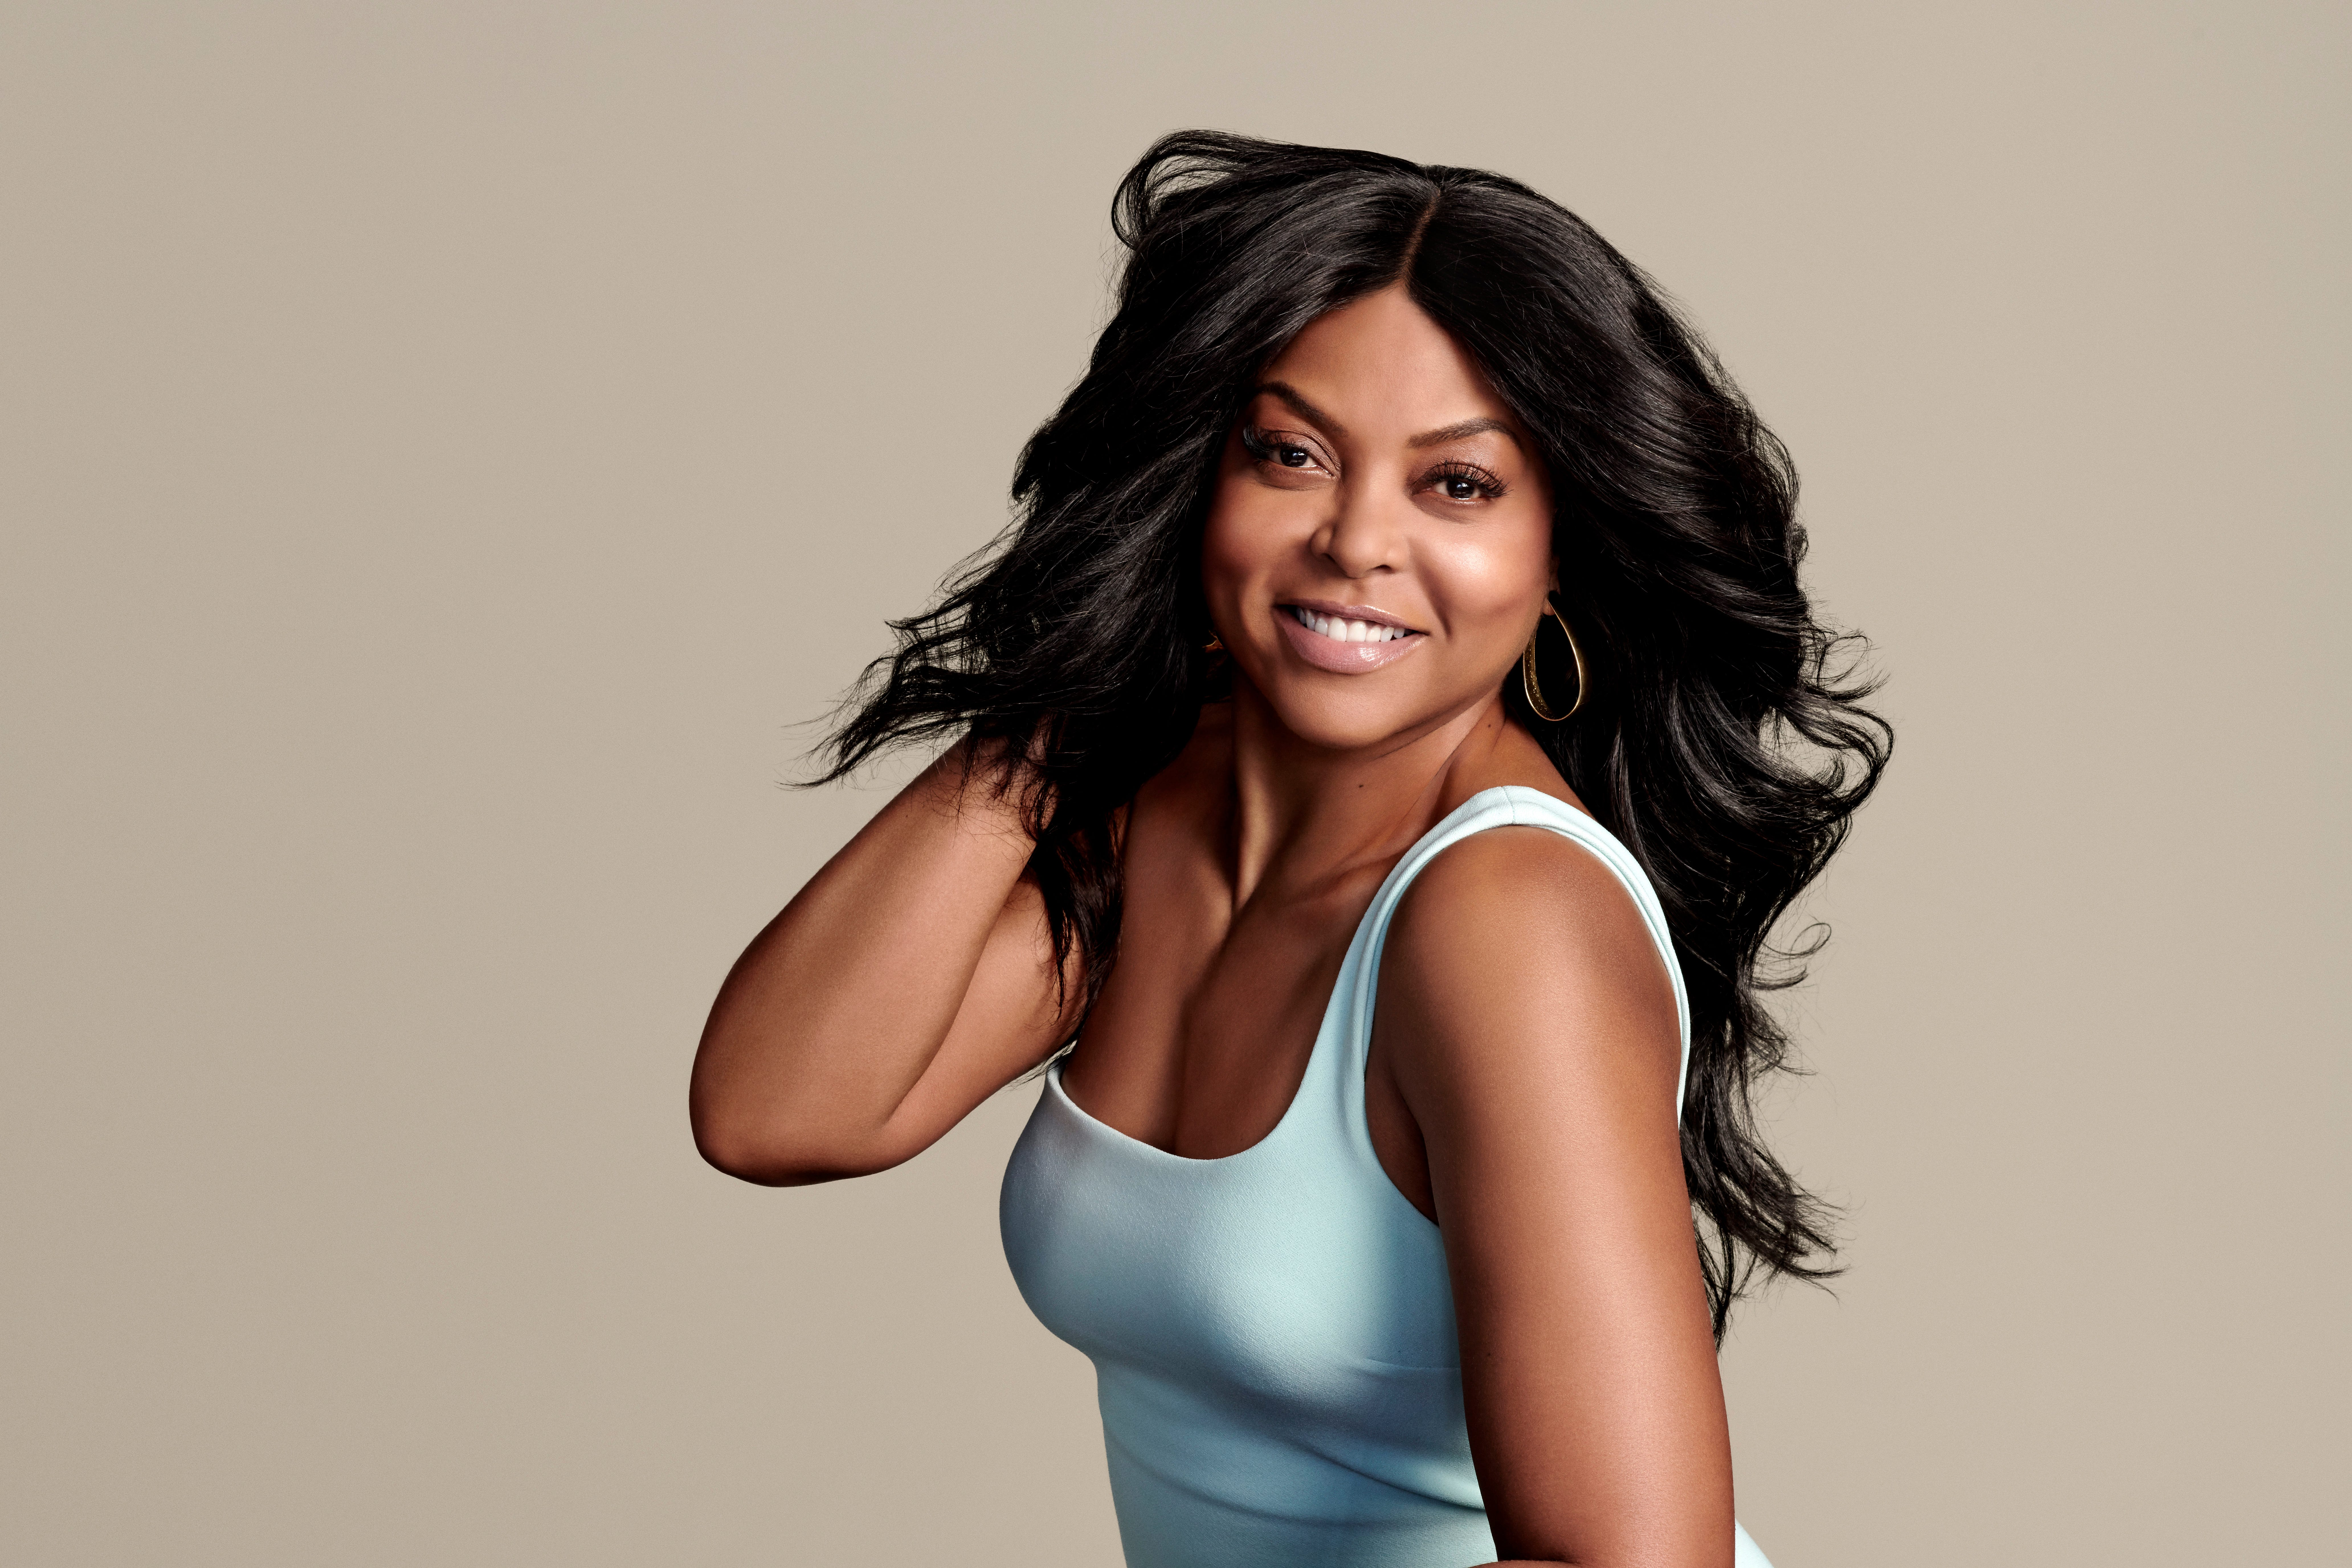 How Taraji P Henson Became An Actress And Created A Hair Care Line